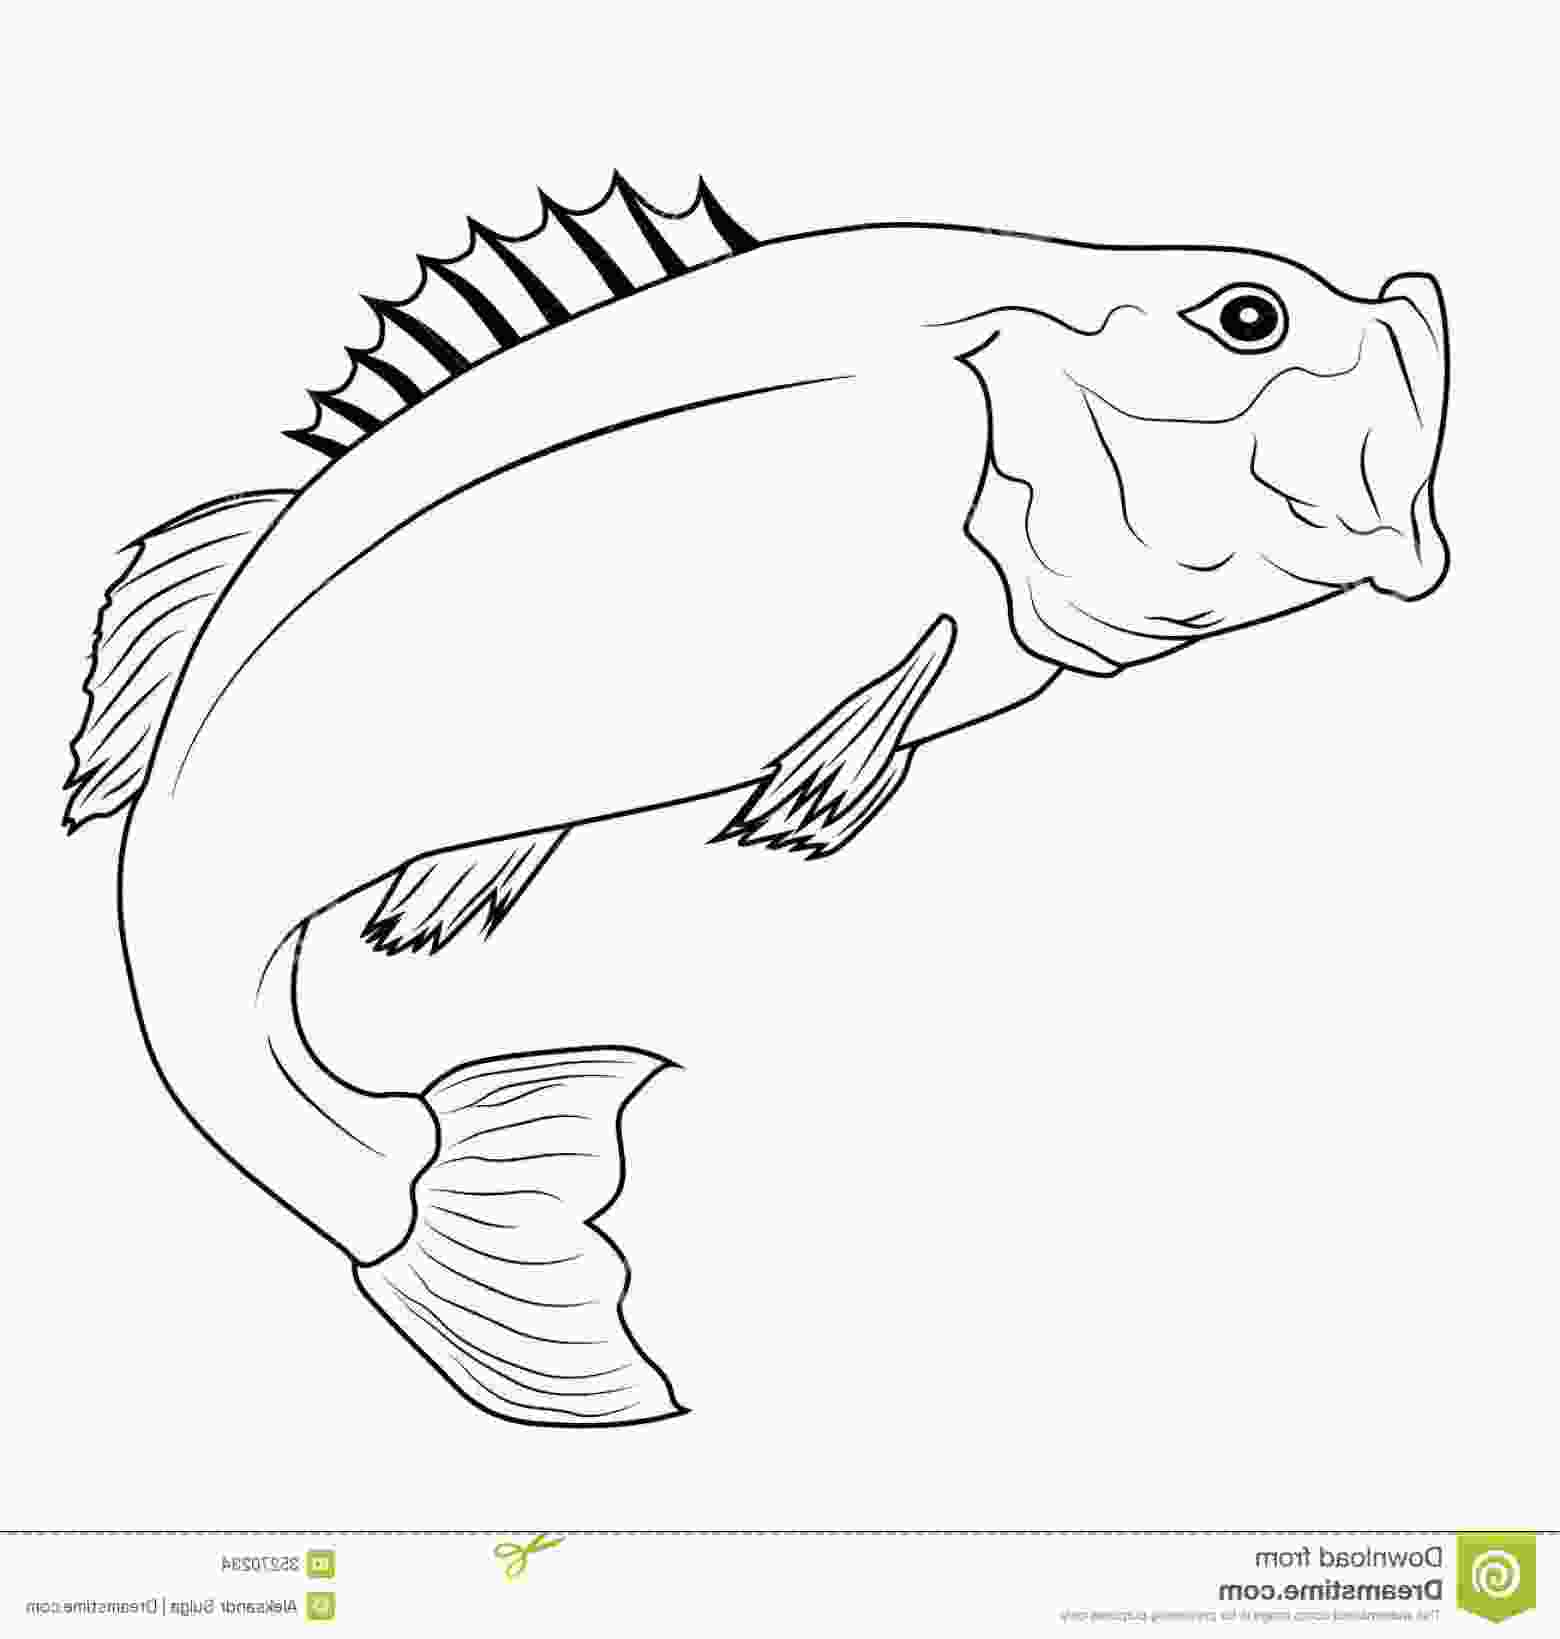 bass fish outline stock images jumping fish bass outline illustration image